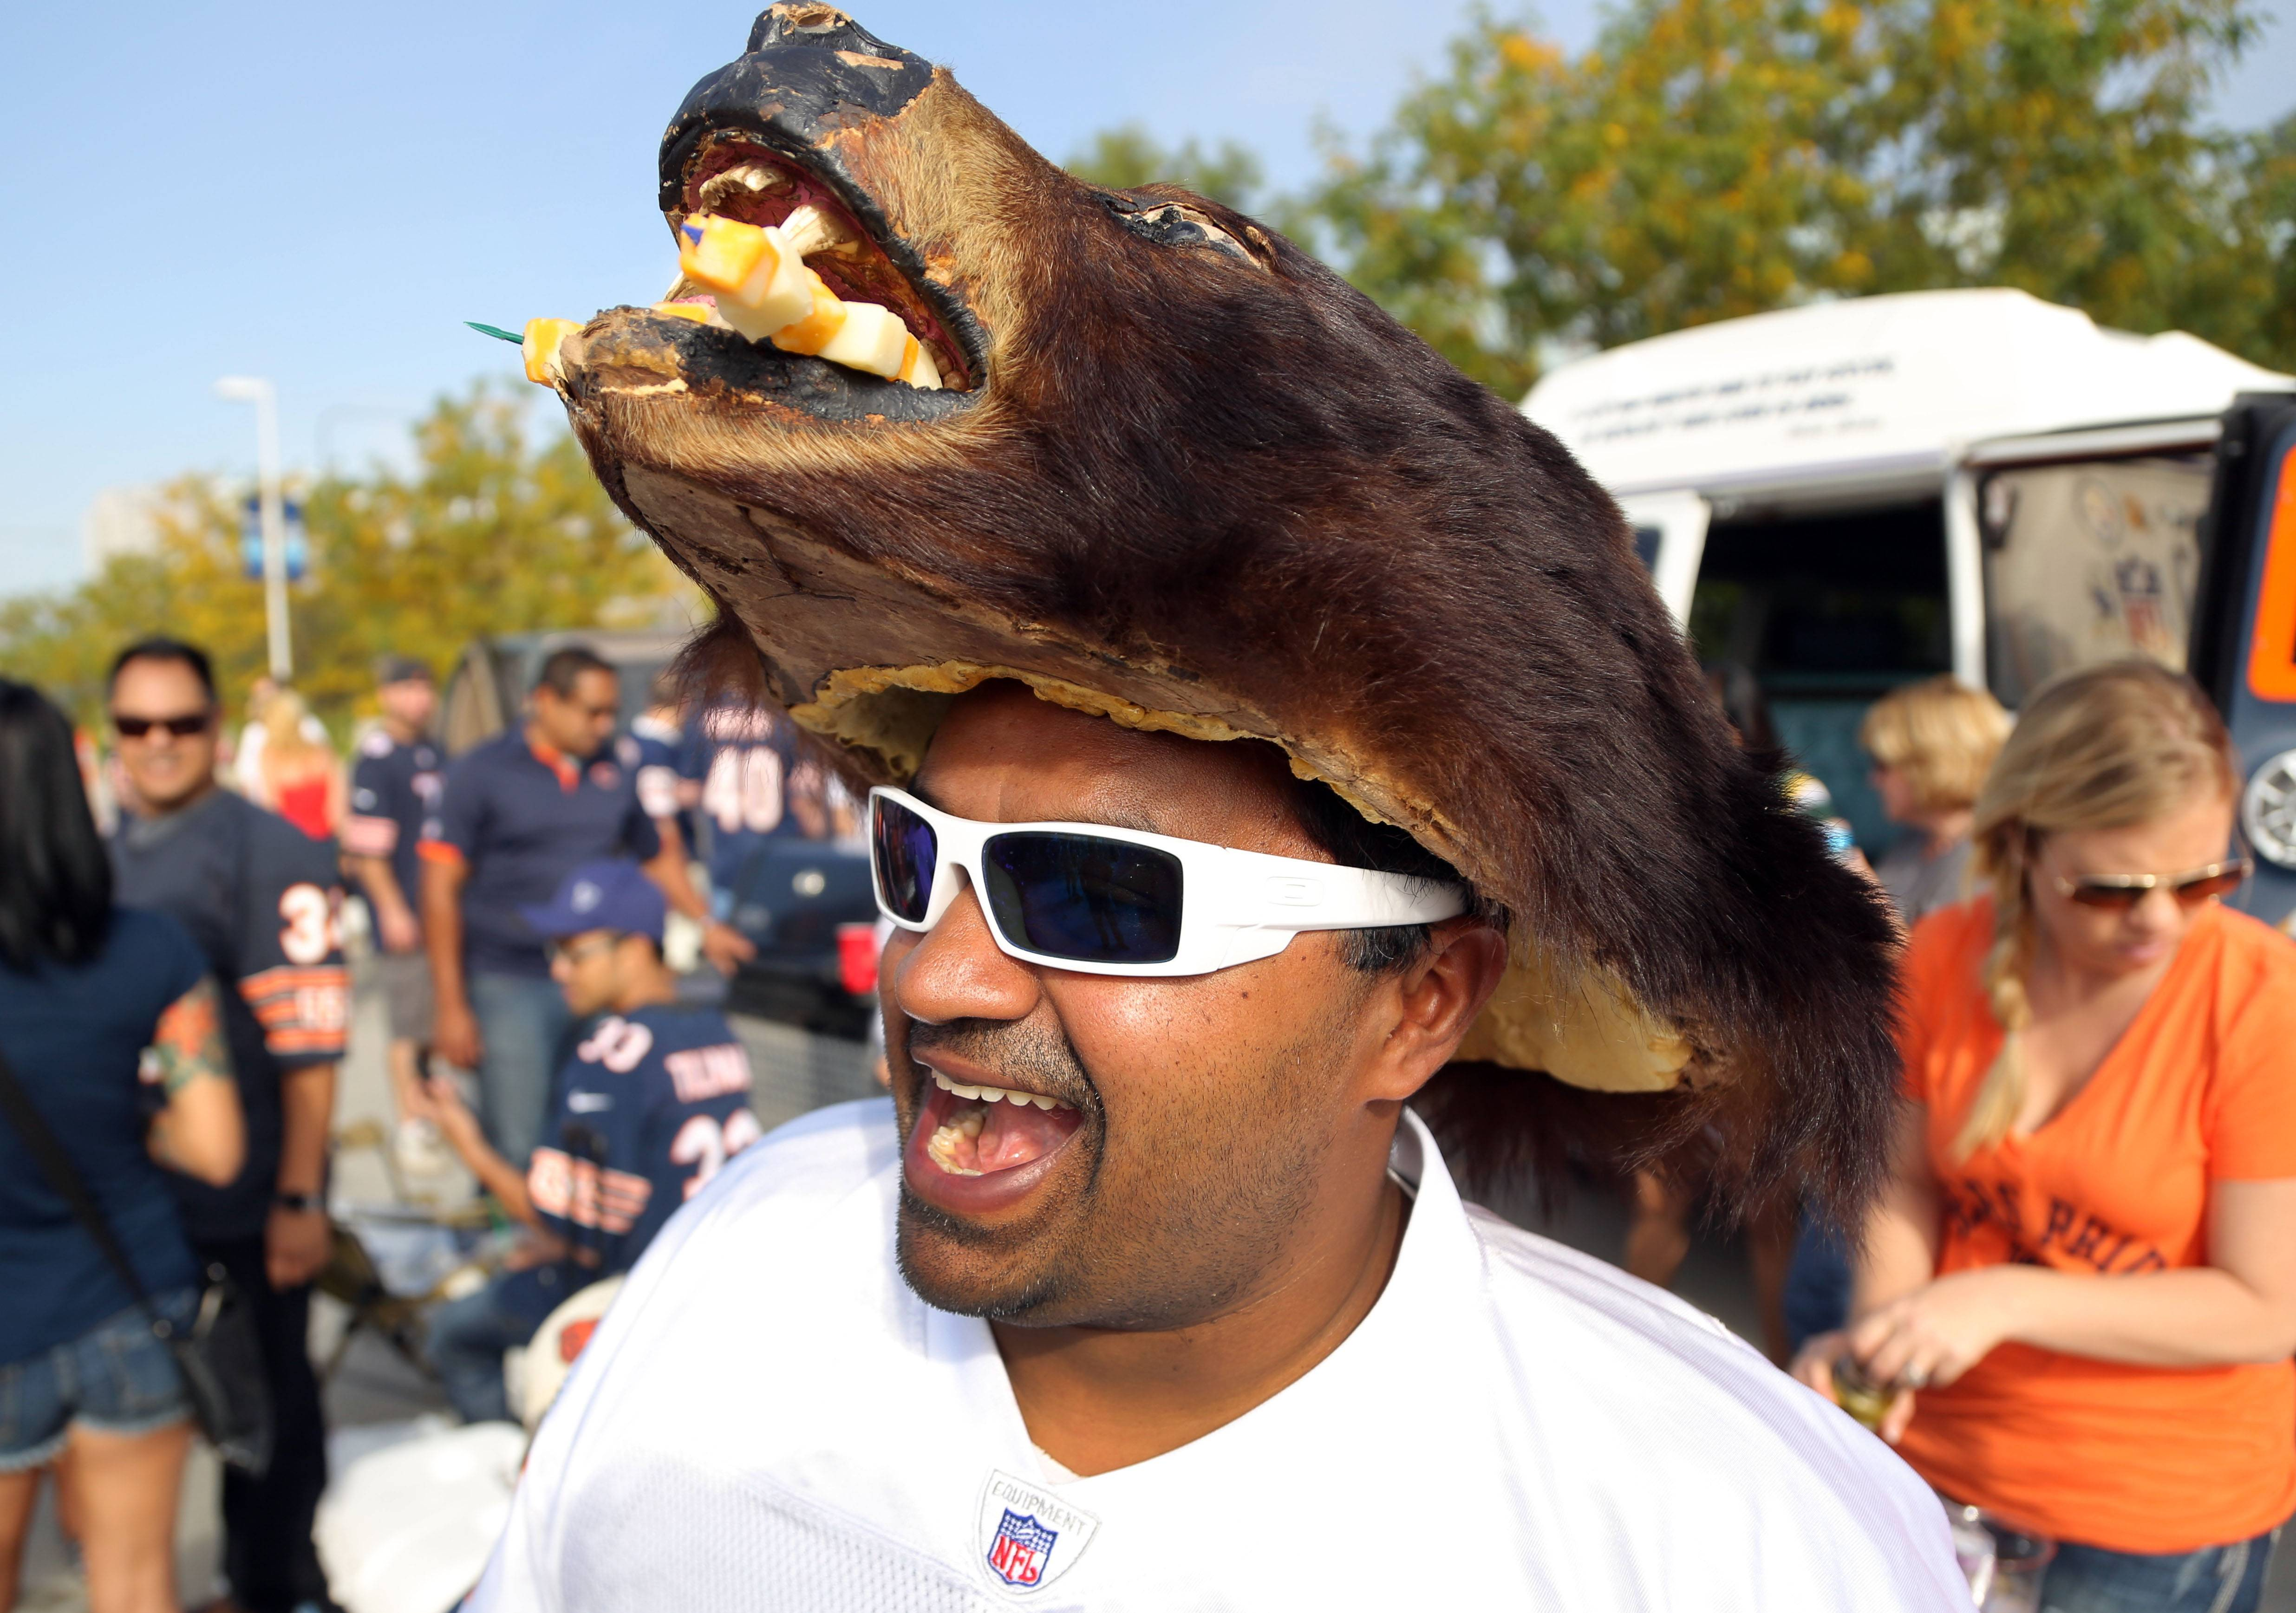 Sal Kahan of Naperville has cheese stuffed into the mouth of his bear hat prior to the Bears Packers game Sunday at Soldier Field in Chicago.